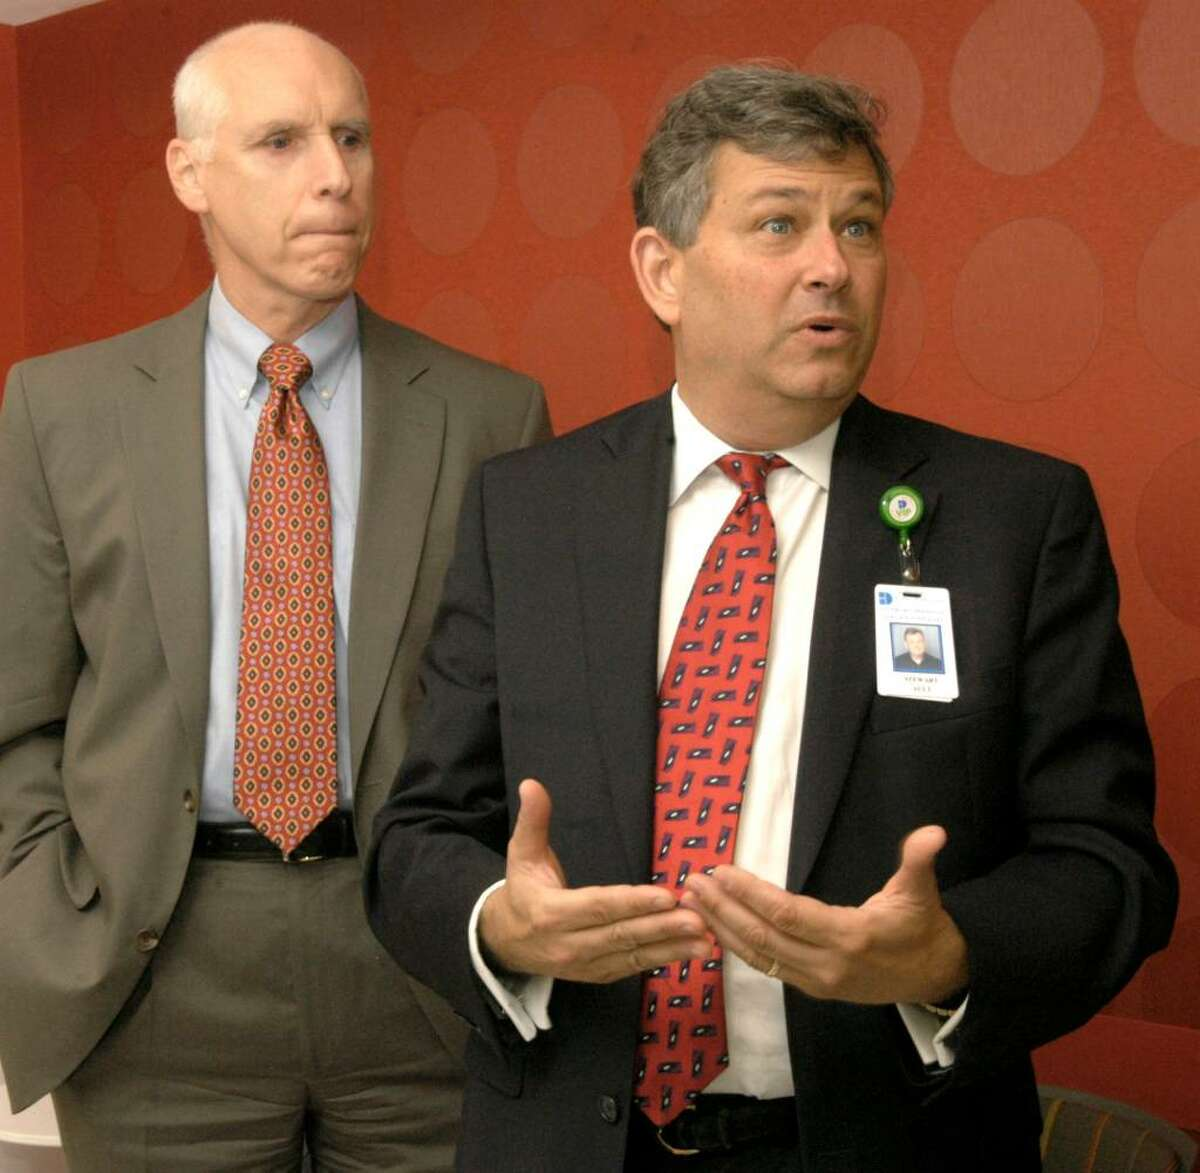 Carol Kaliff/staff photographer. Frank Kelly, left, President and CEO of Danbury Hospital and Stewart Ault, Service Line Executive for Women and Children's Services at the hospital talk about the new pediatric clinic that the hospital is opening.